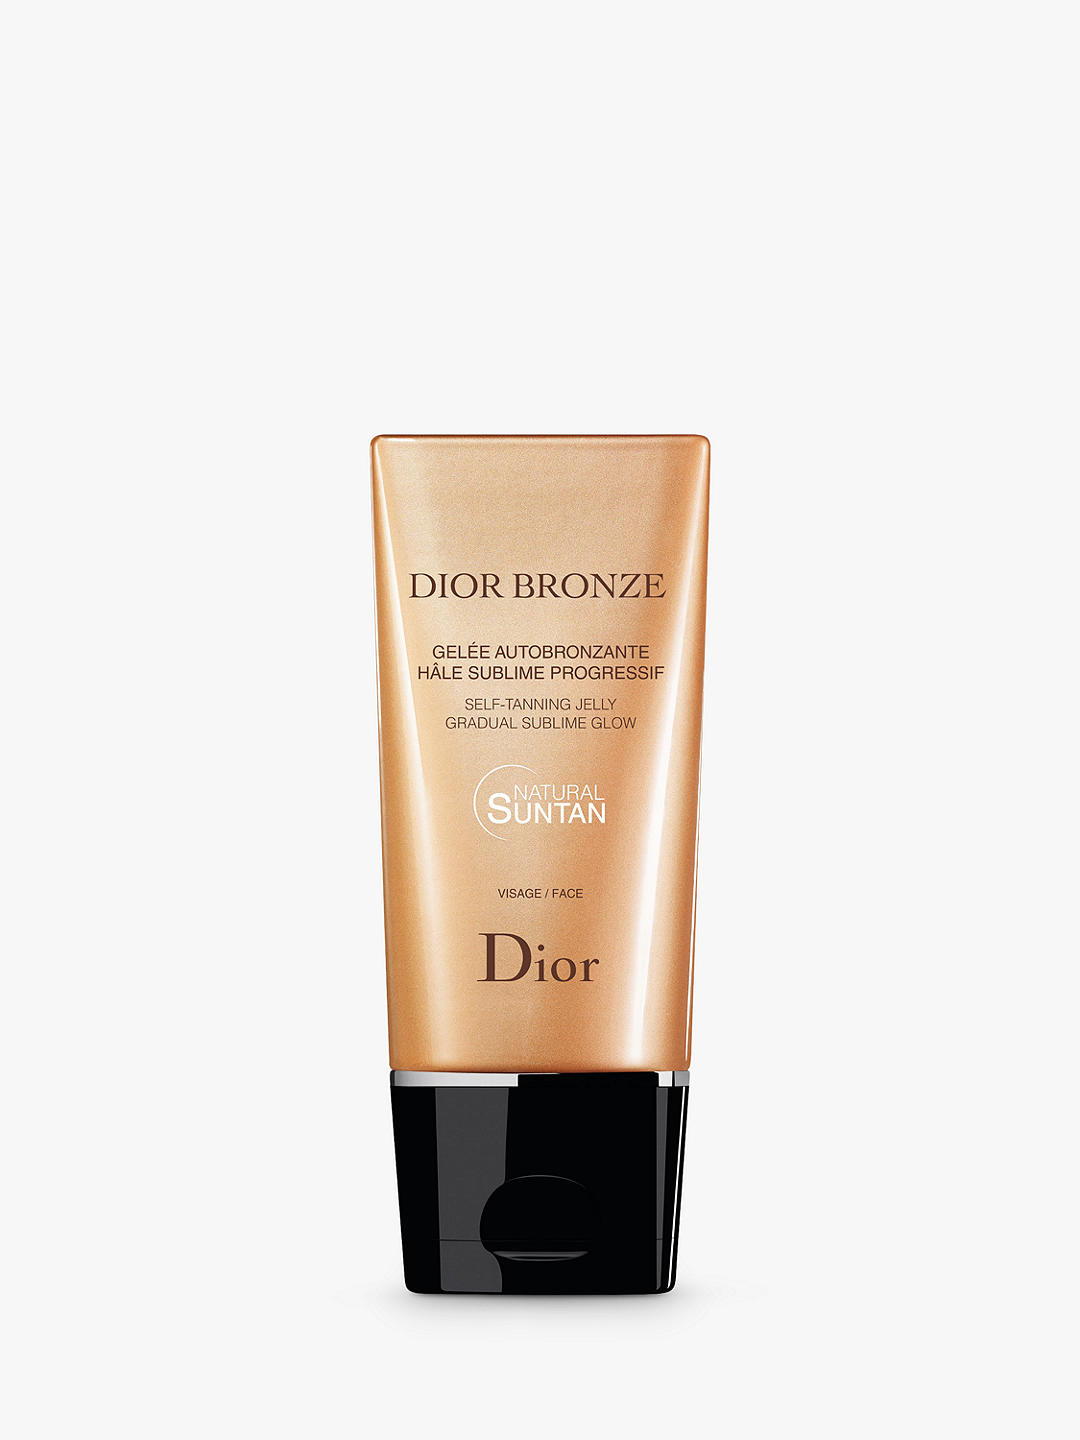 Гель для автозагара christian dior bronze self-tanning jelly face